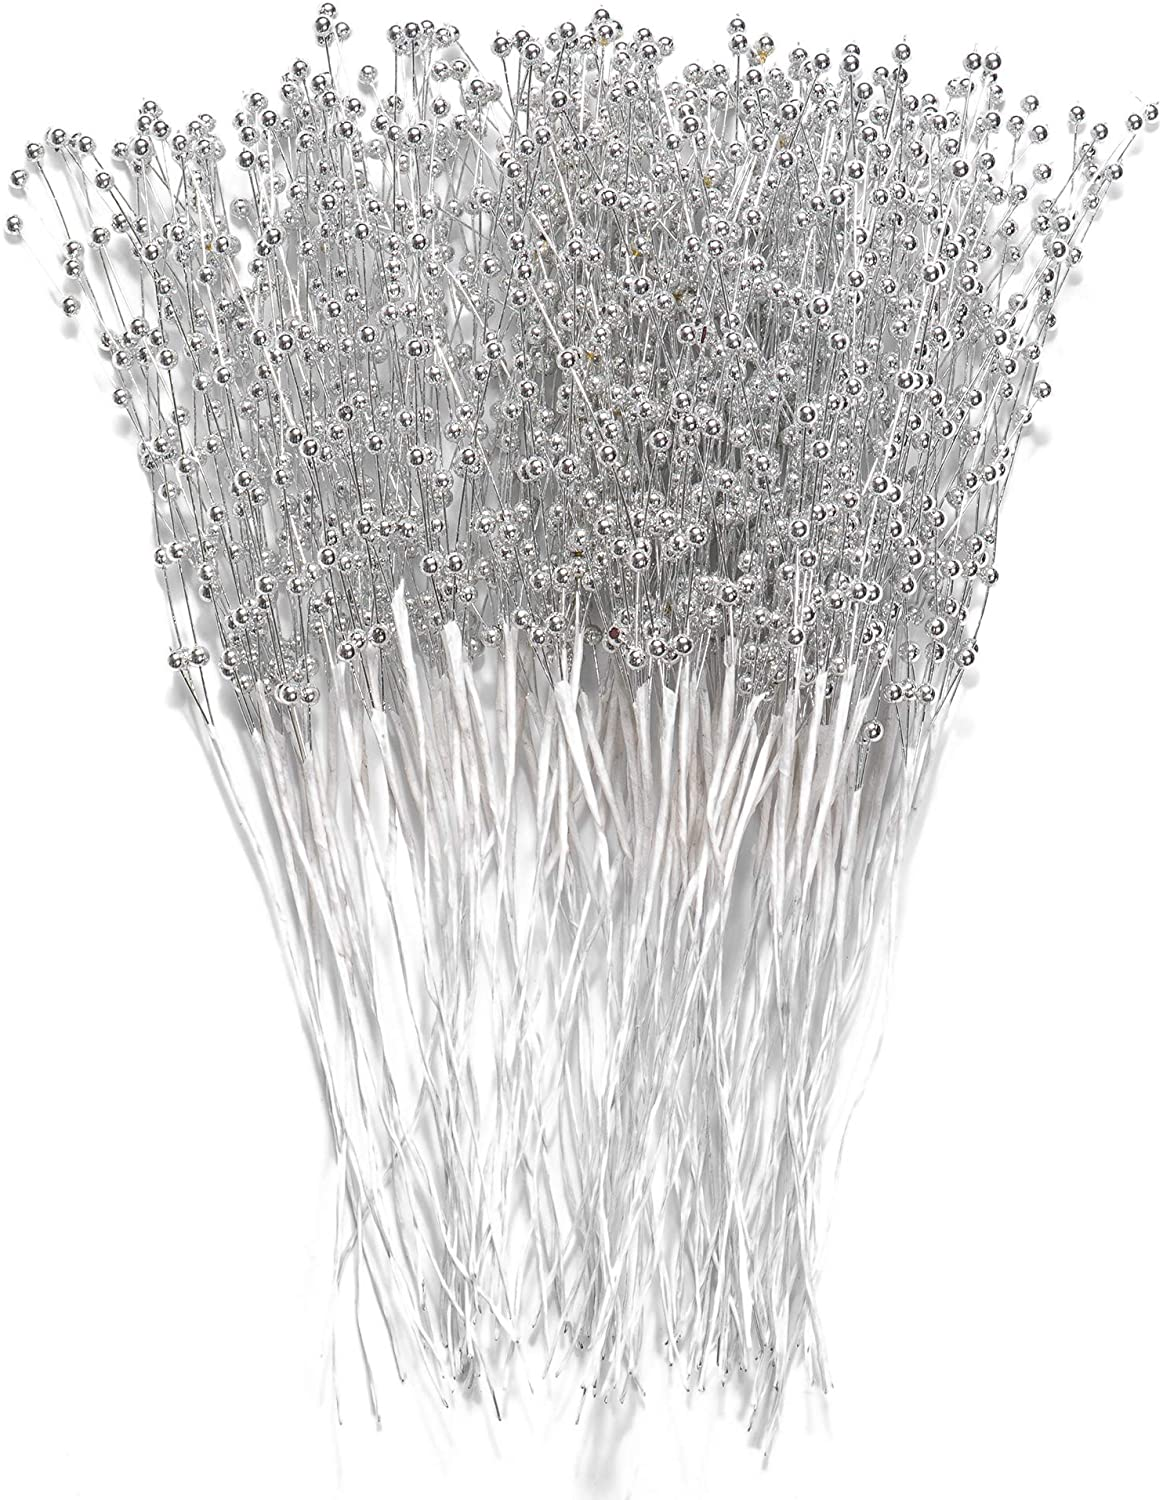 60 Pcs Pearl Sticks Bouquet 4MM Bead String Pearls Garland for DIY Bridal Wedding Bouquet, Christmas Pick, Party Table Center Decorations (Silver)